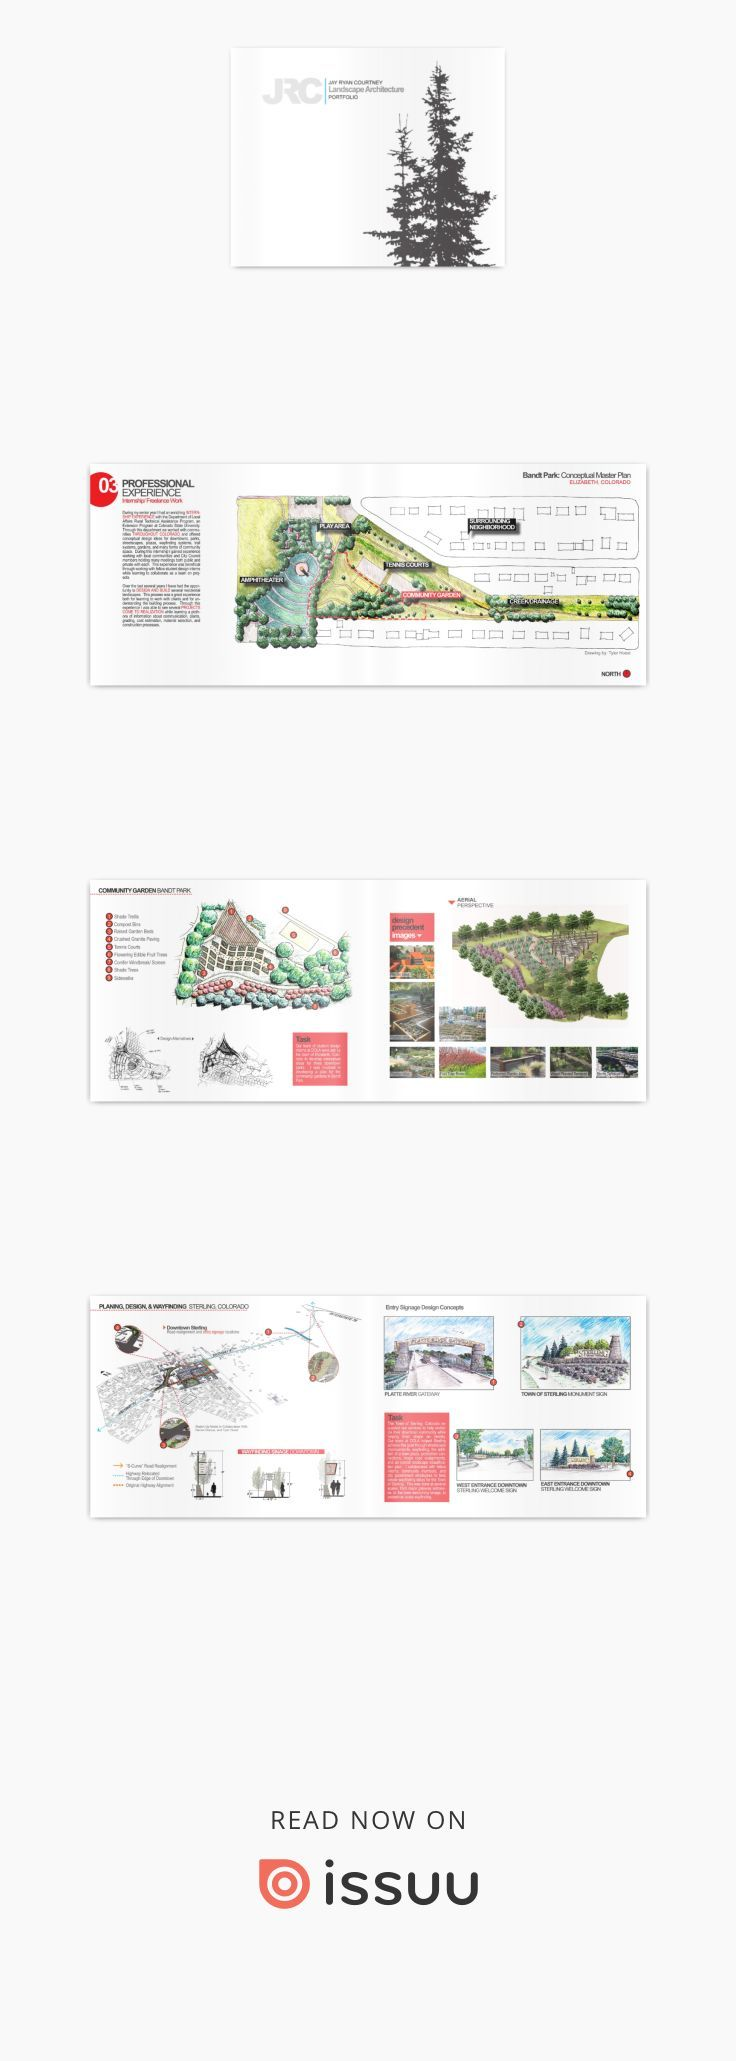 Jay Ryan Courtney // Landscape Architecture Portfolio  This portfolio showcases projects I created in my professional experience and while earning my BSLA at Colorado State University.